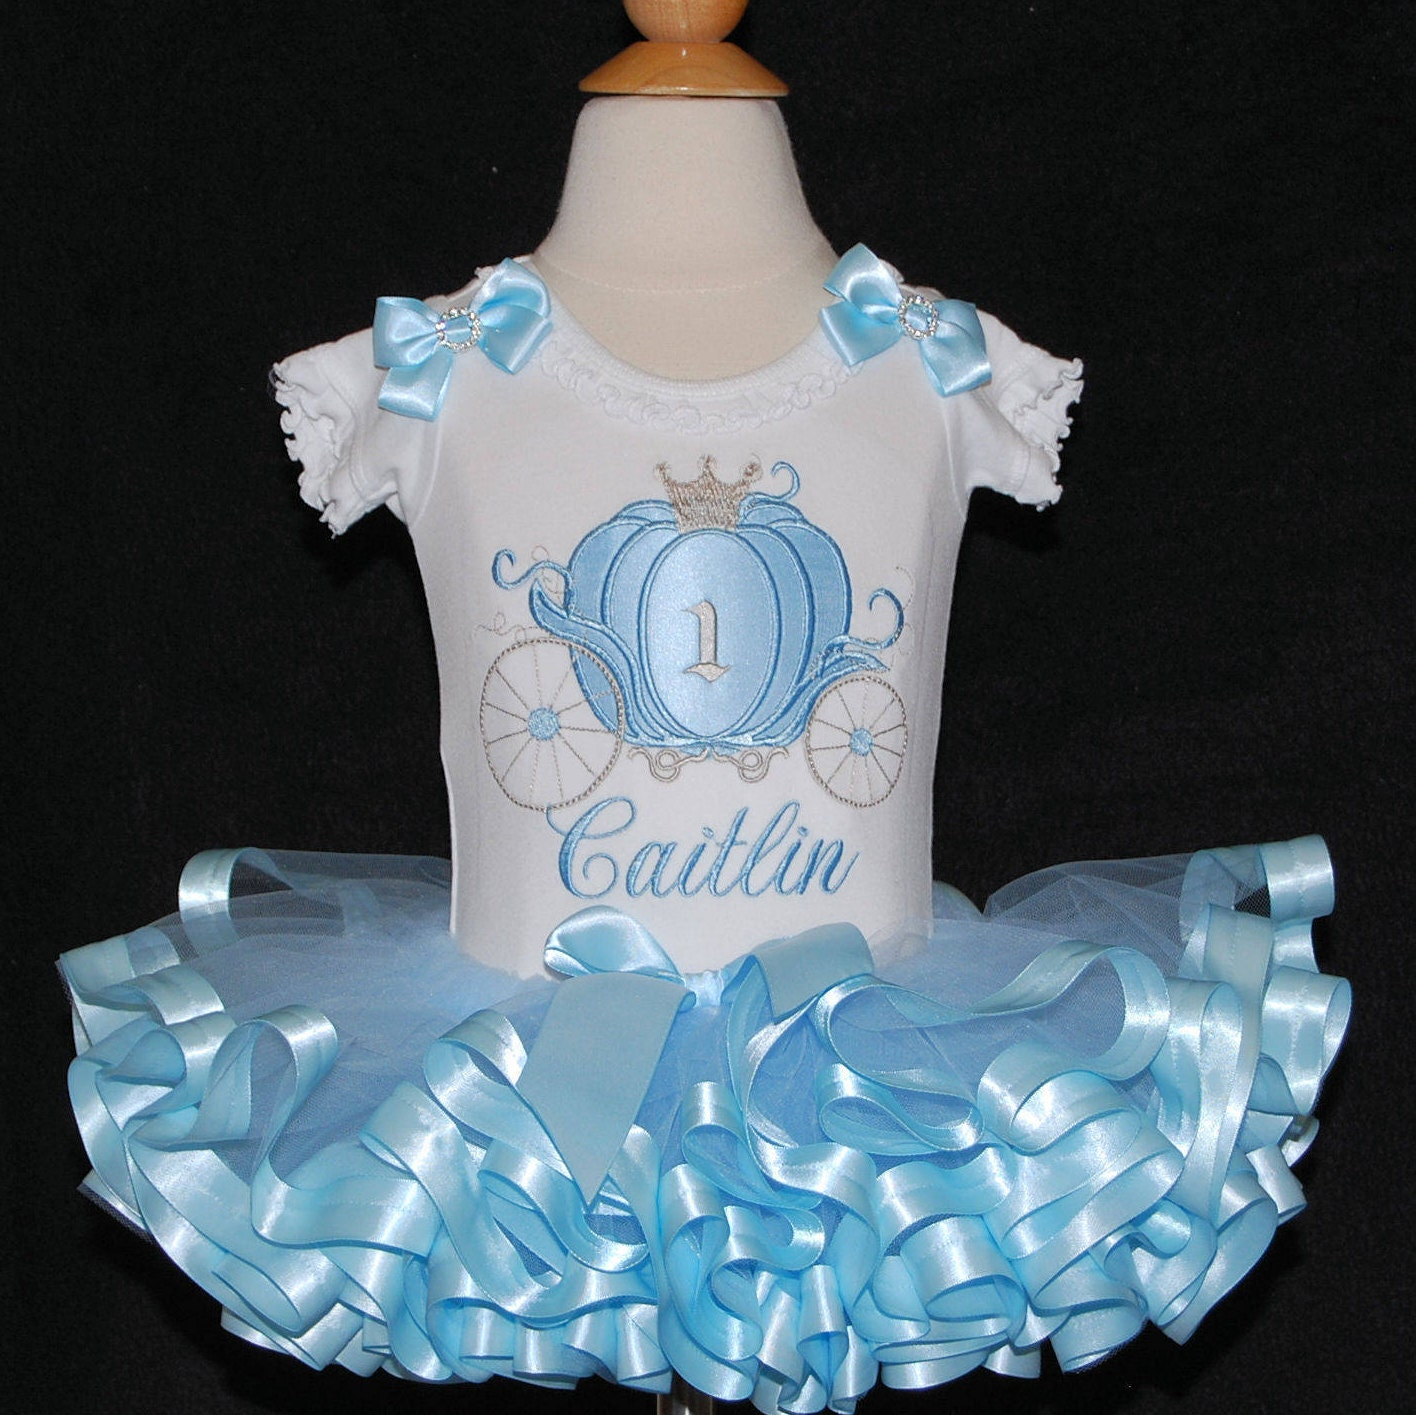 Cinderella carriage princess birthday 1st birthday tutu outfit cake smash 1st birthday girl dress baby tutu Cinderella tutu personalized